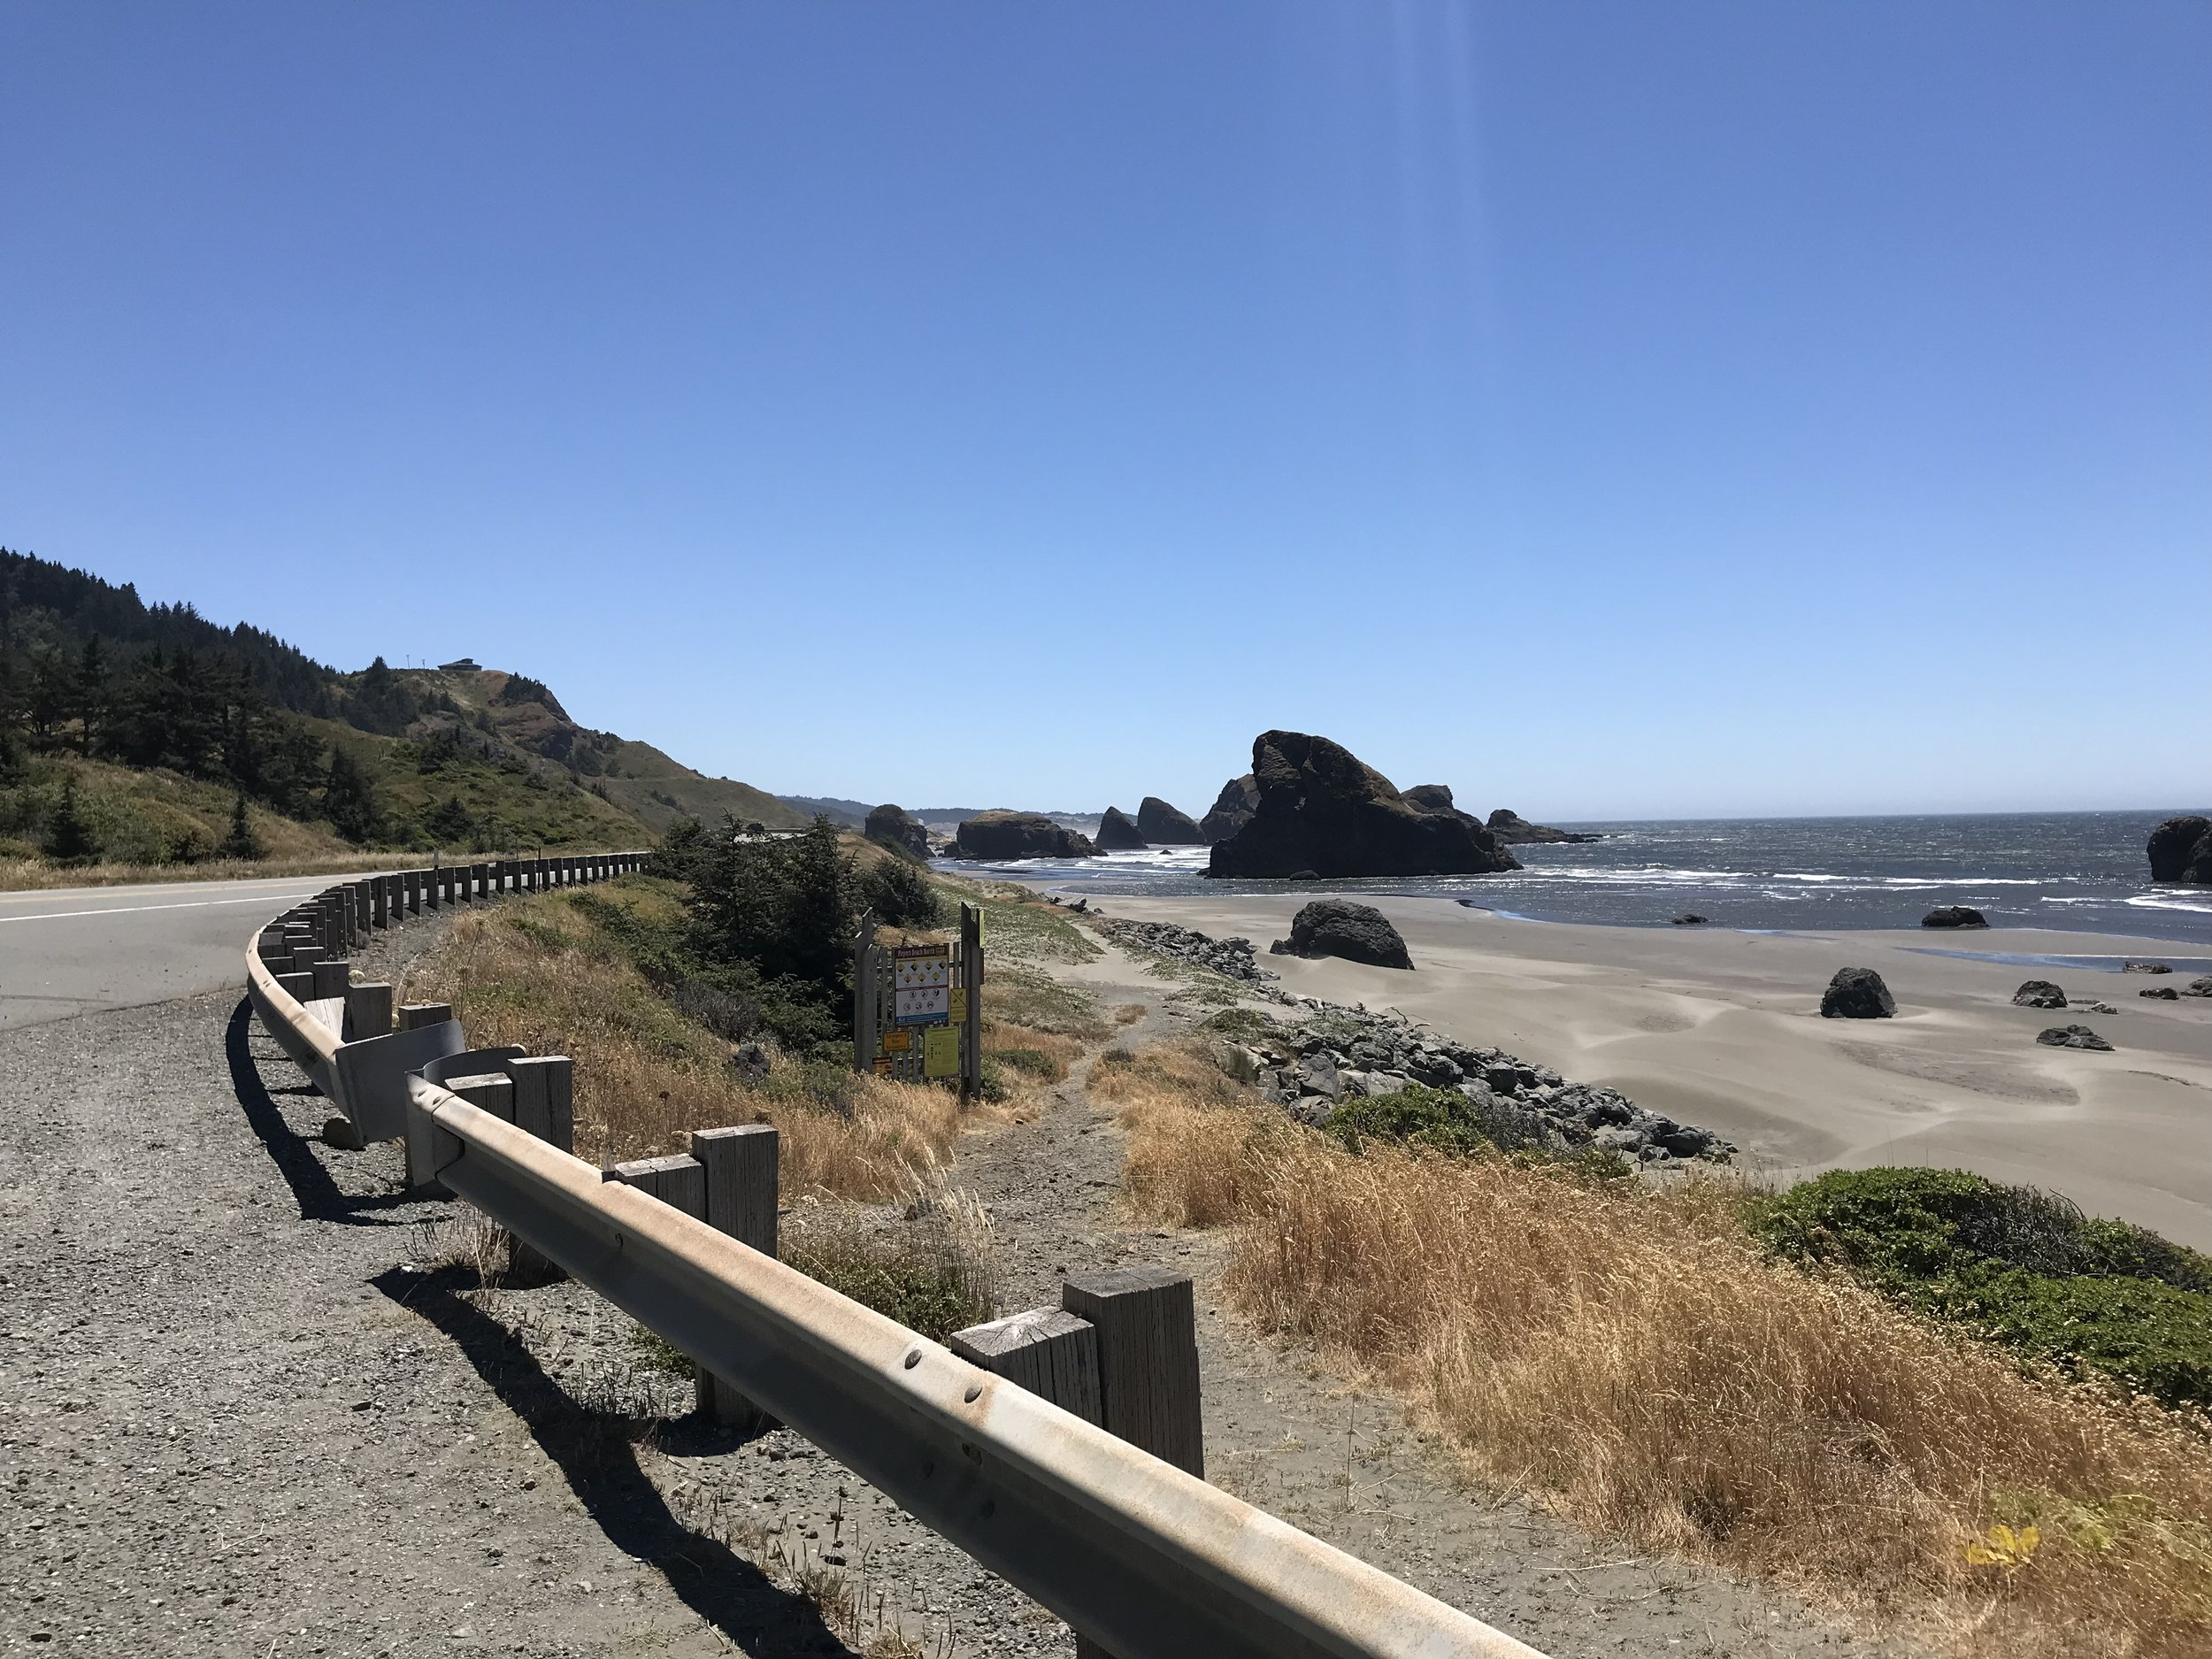 We did the biggest climb of the Oregon coast today just south of Gold Beach. Came down the other side looking at this.